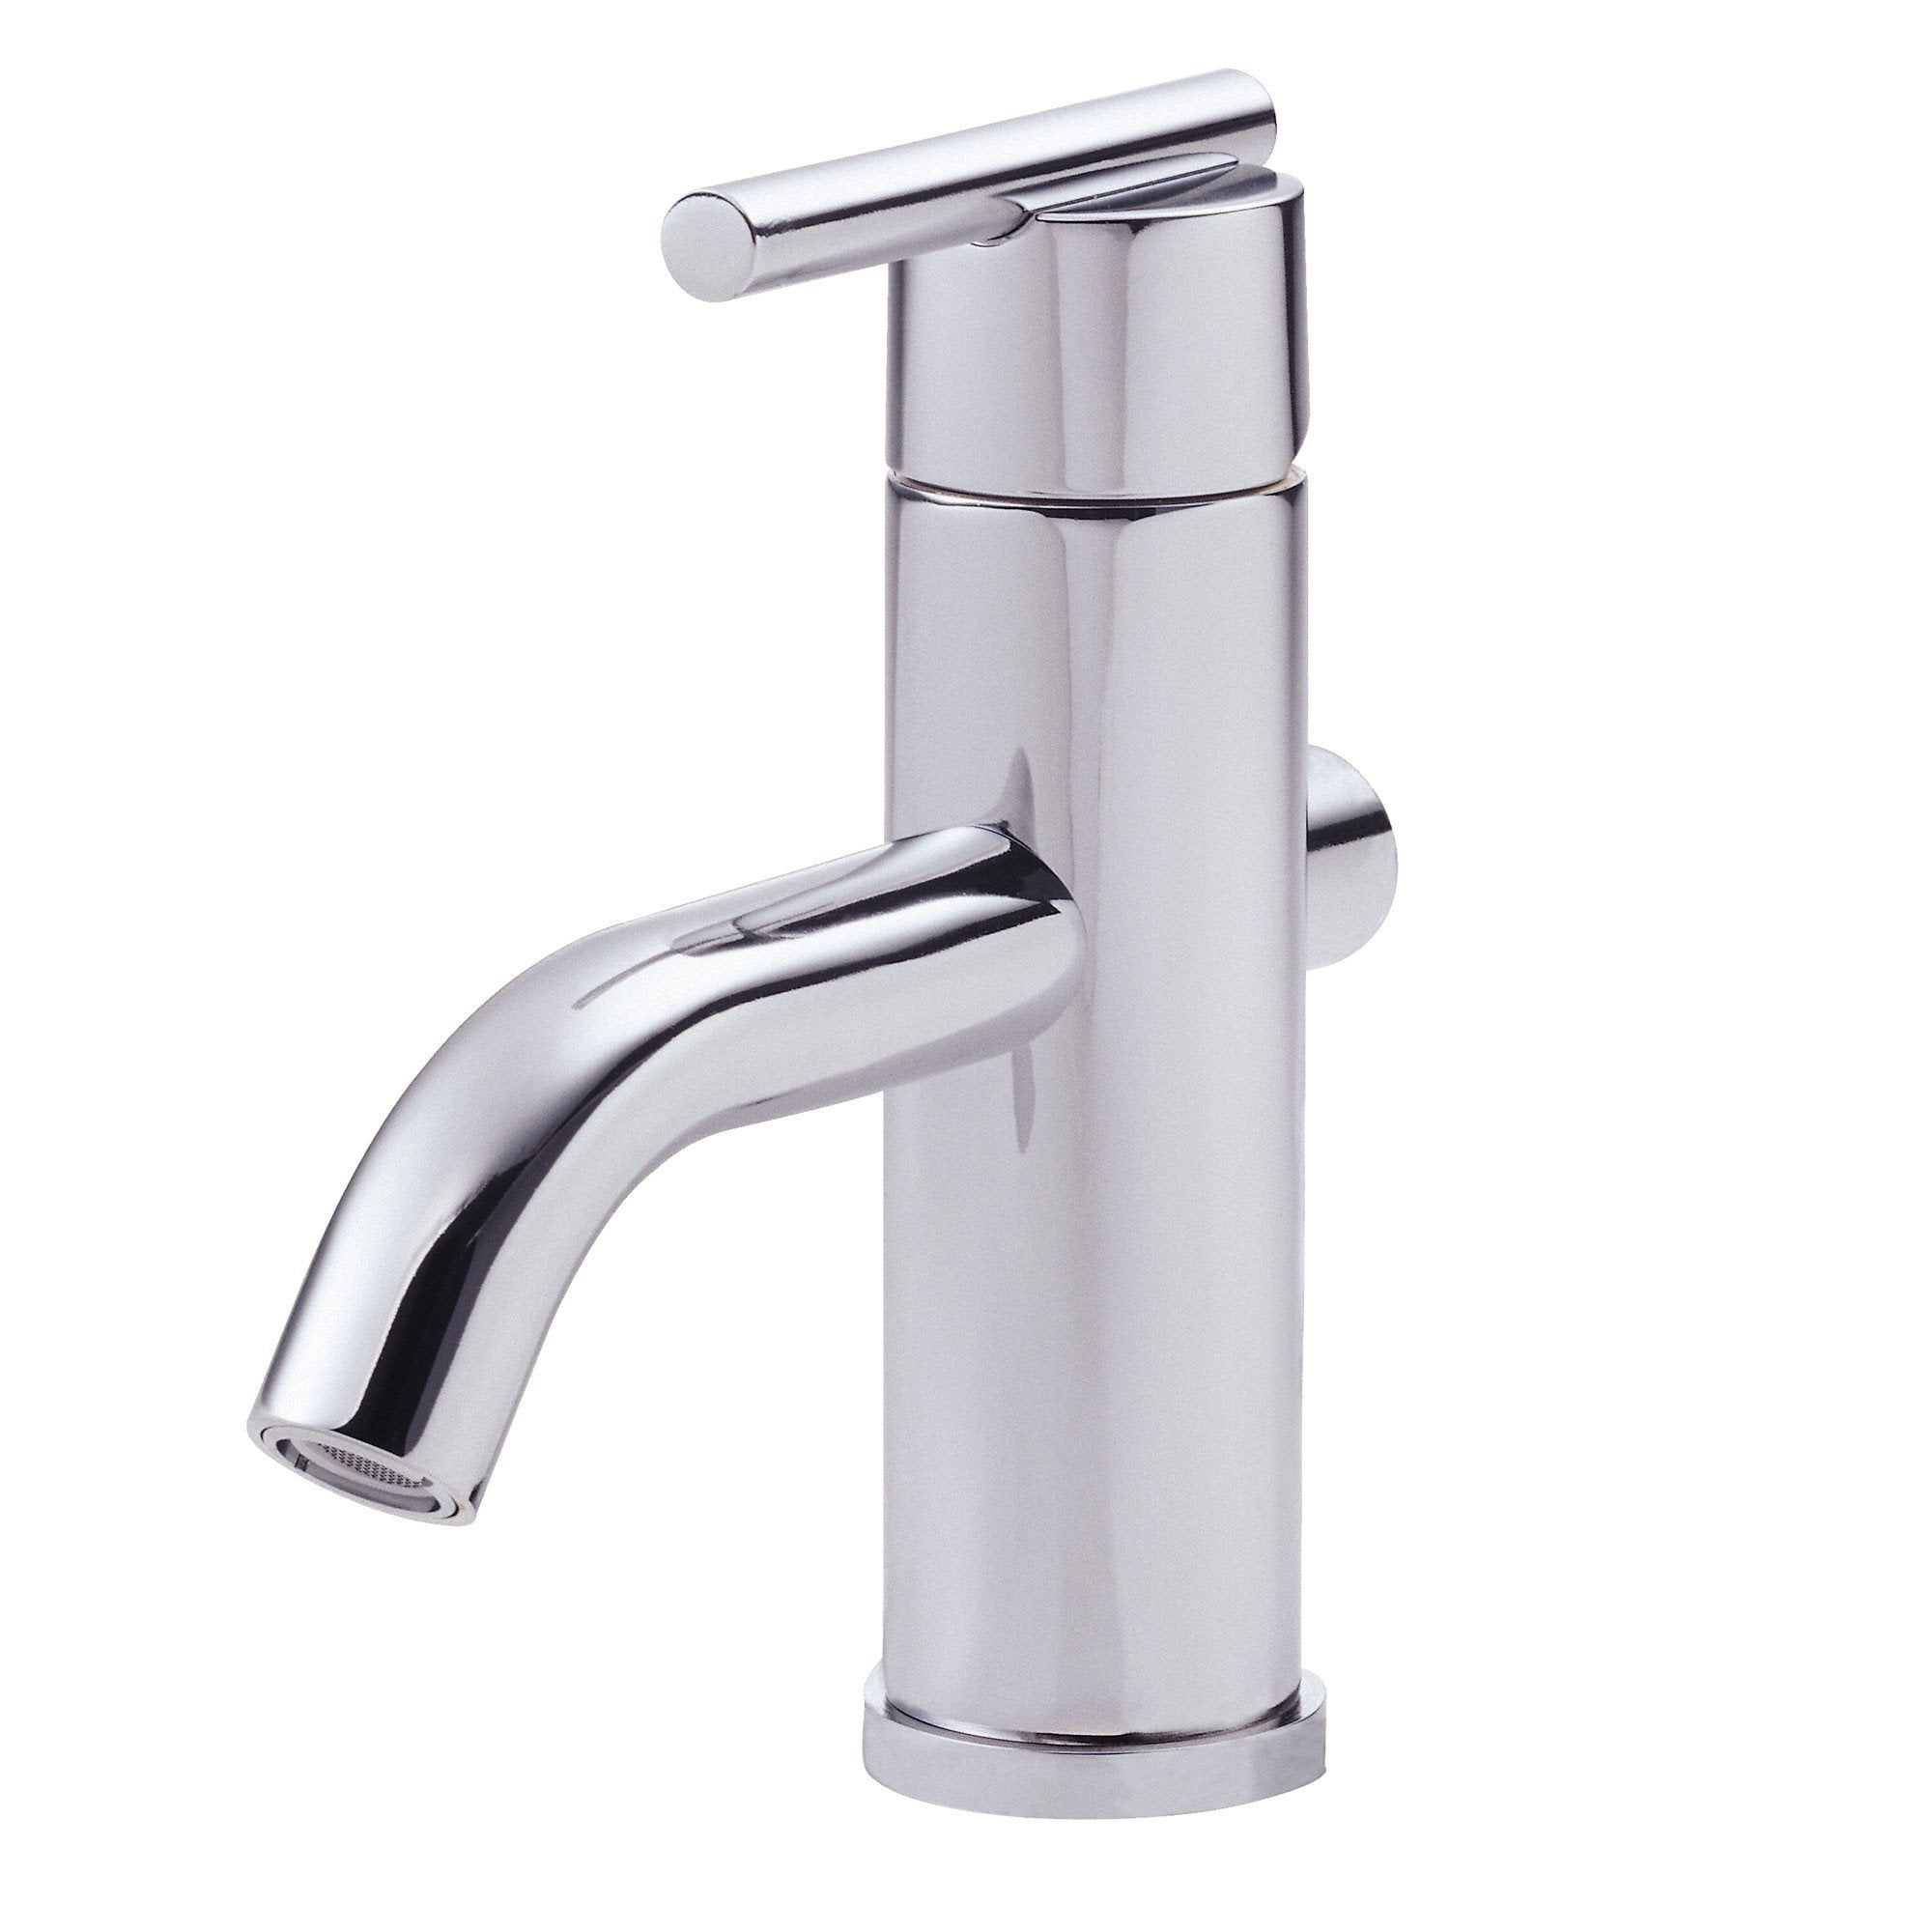 Danze Parma Chrome Single 1 Handle Centerset Bathroom Faucet w Drain